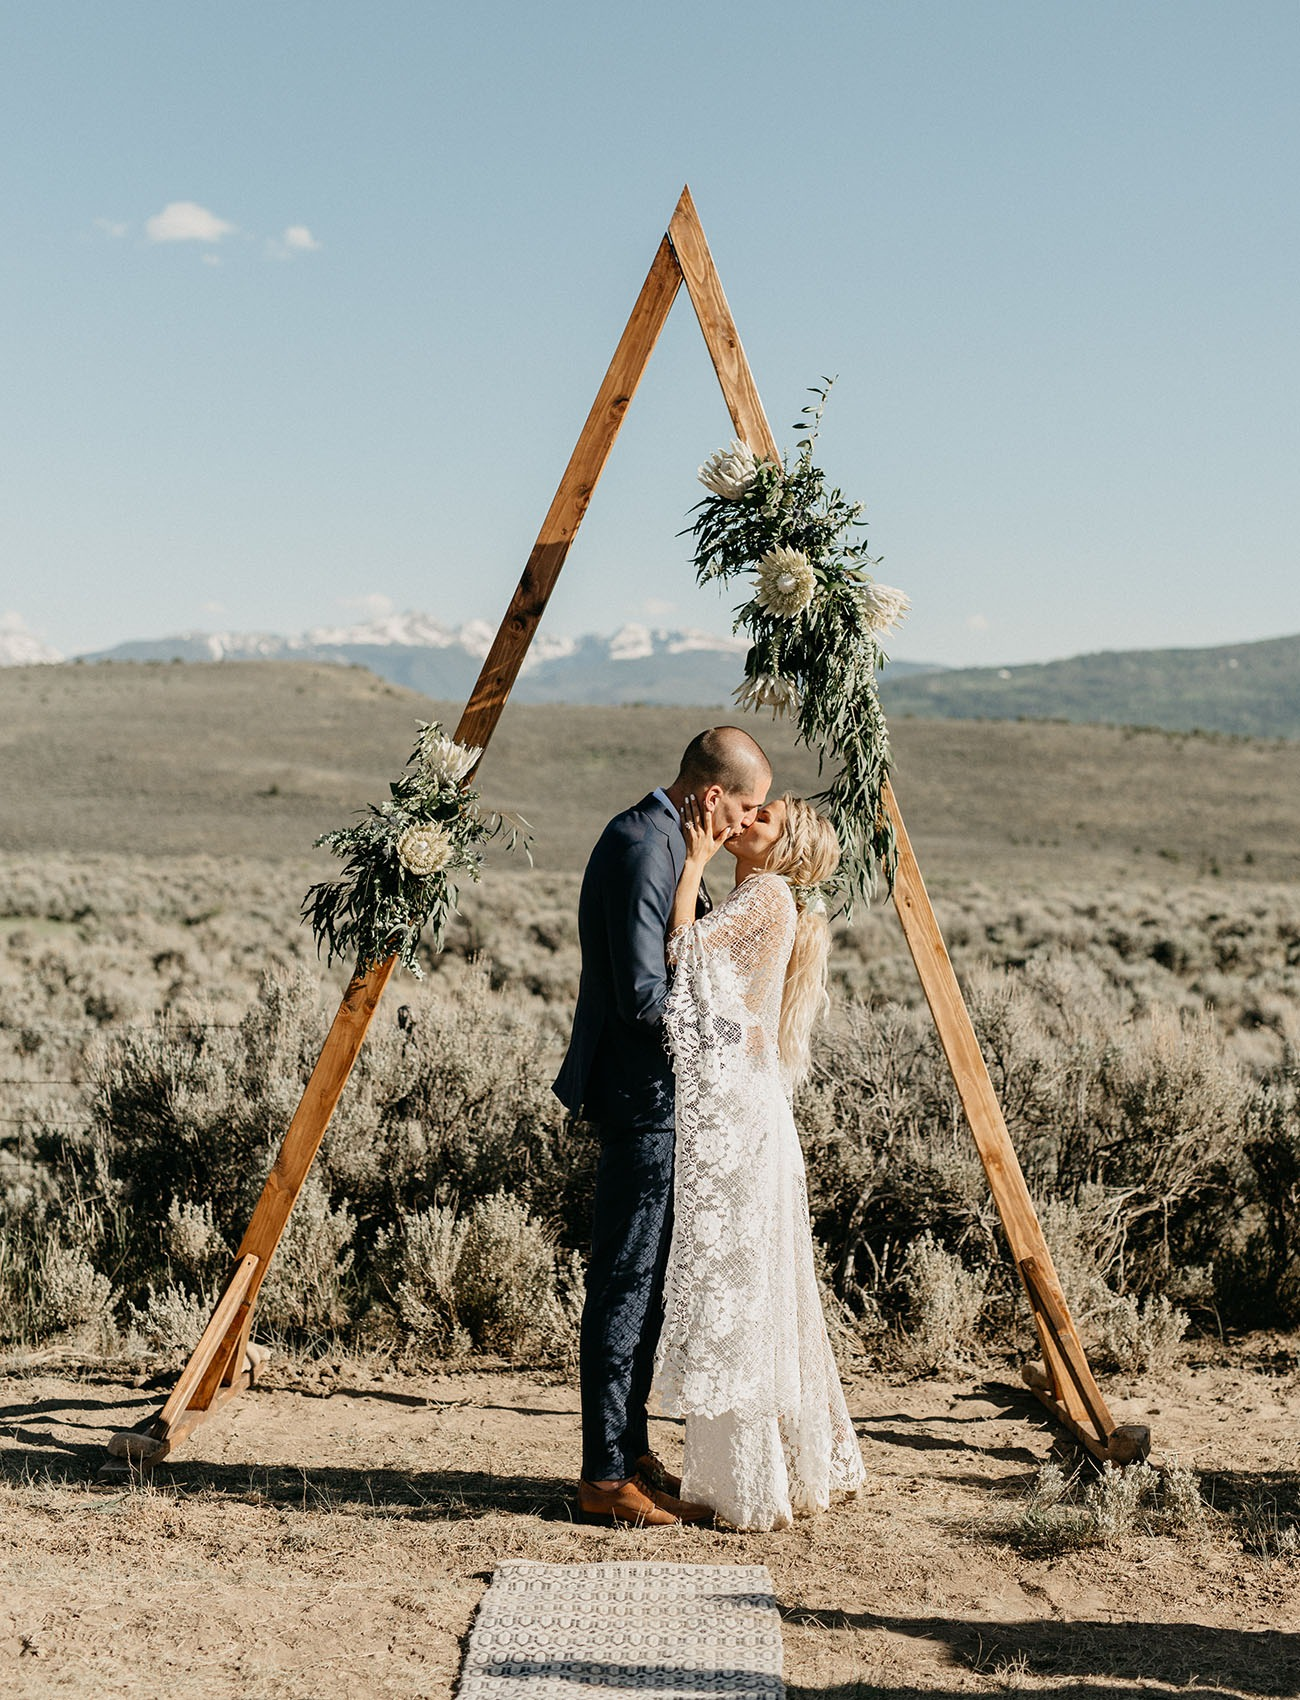 wooden triangle wedding backdrop in the mountains